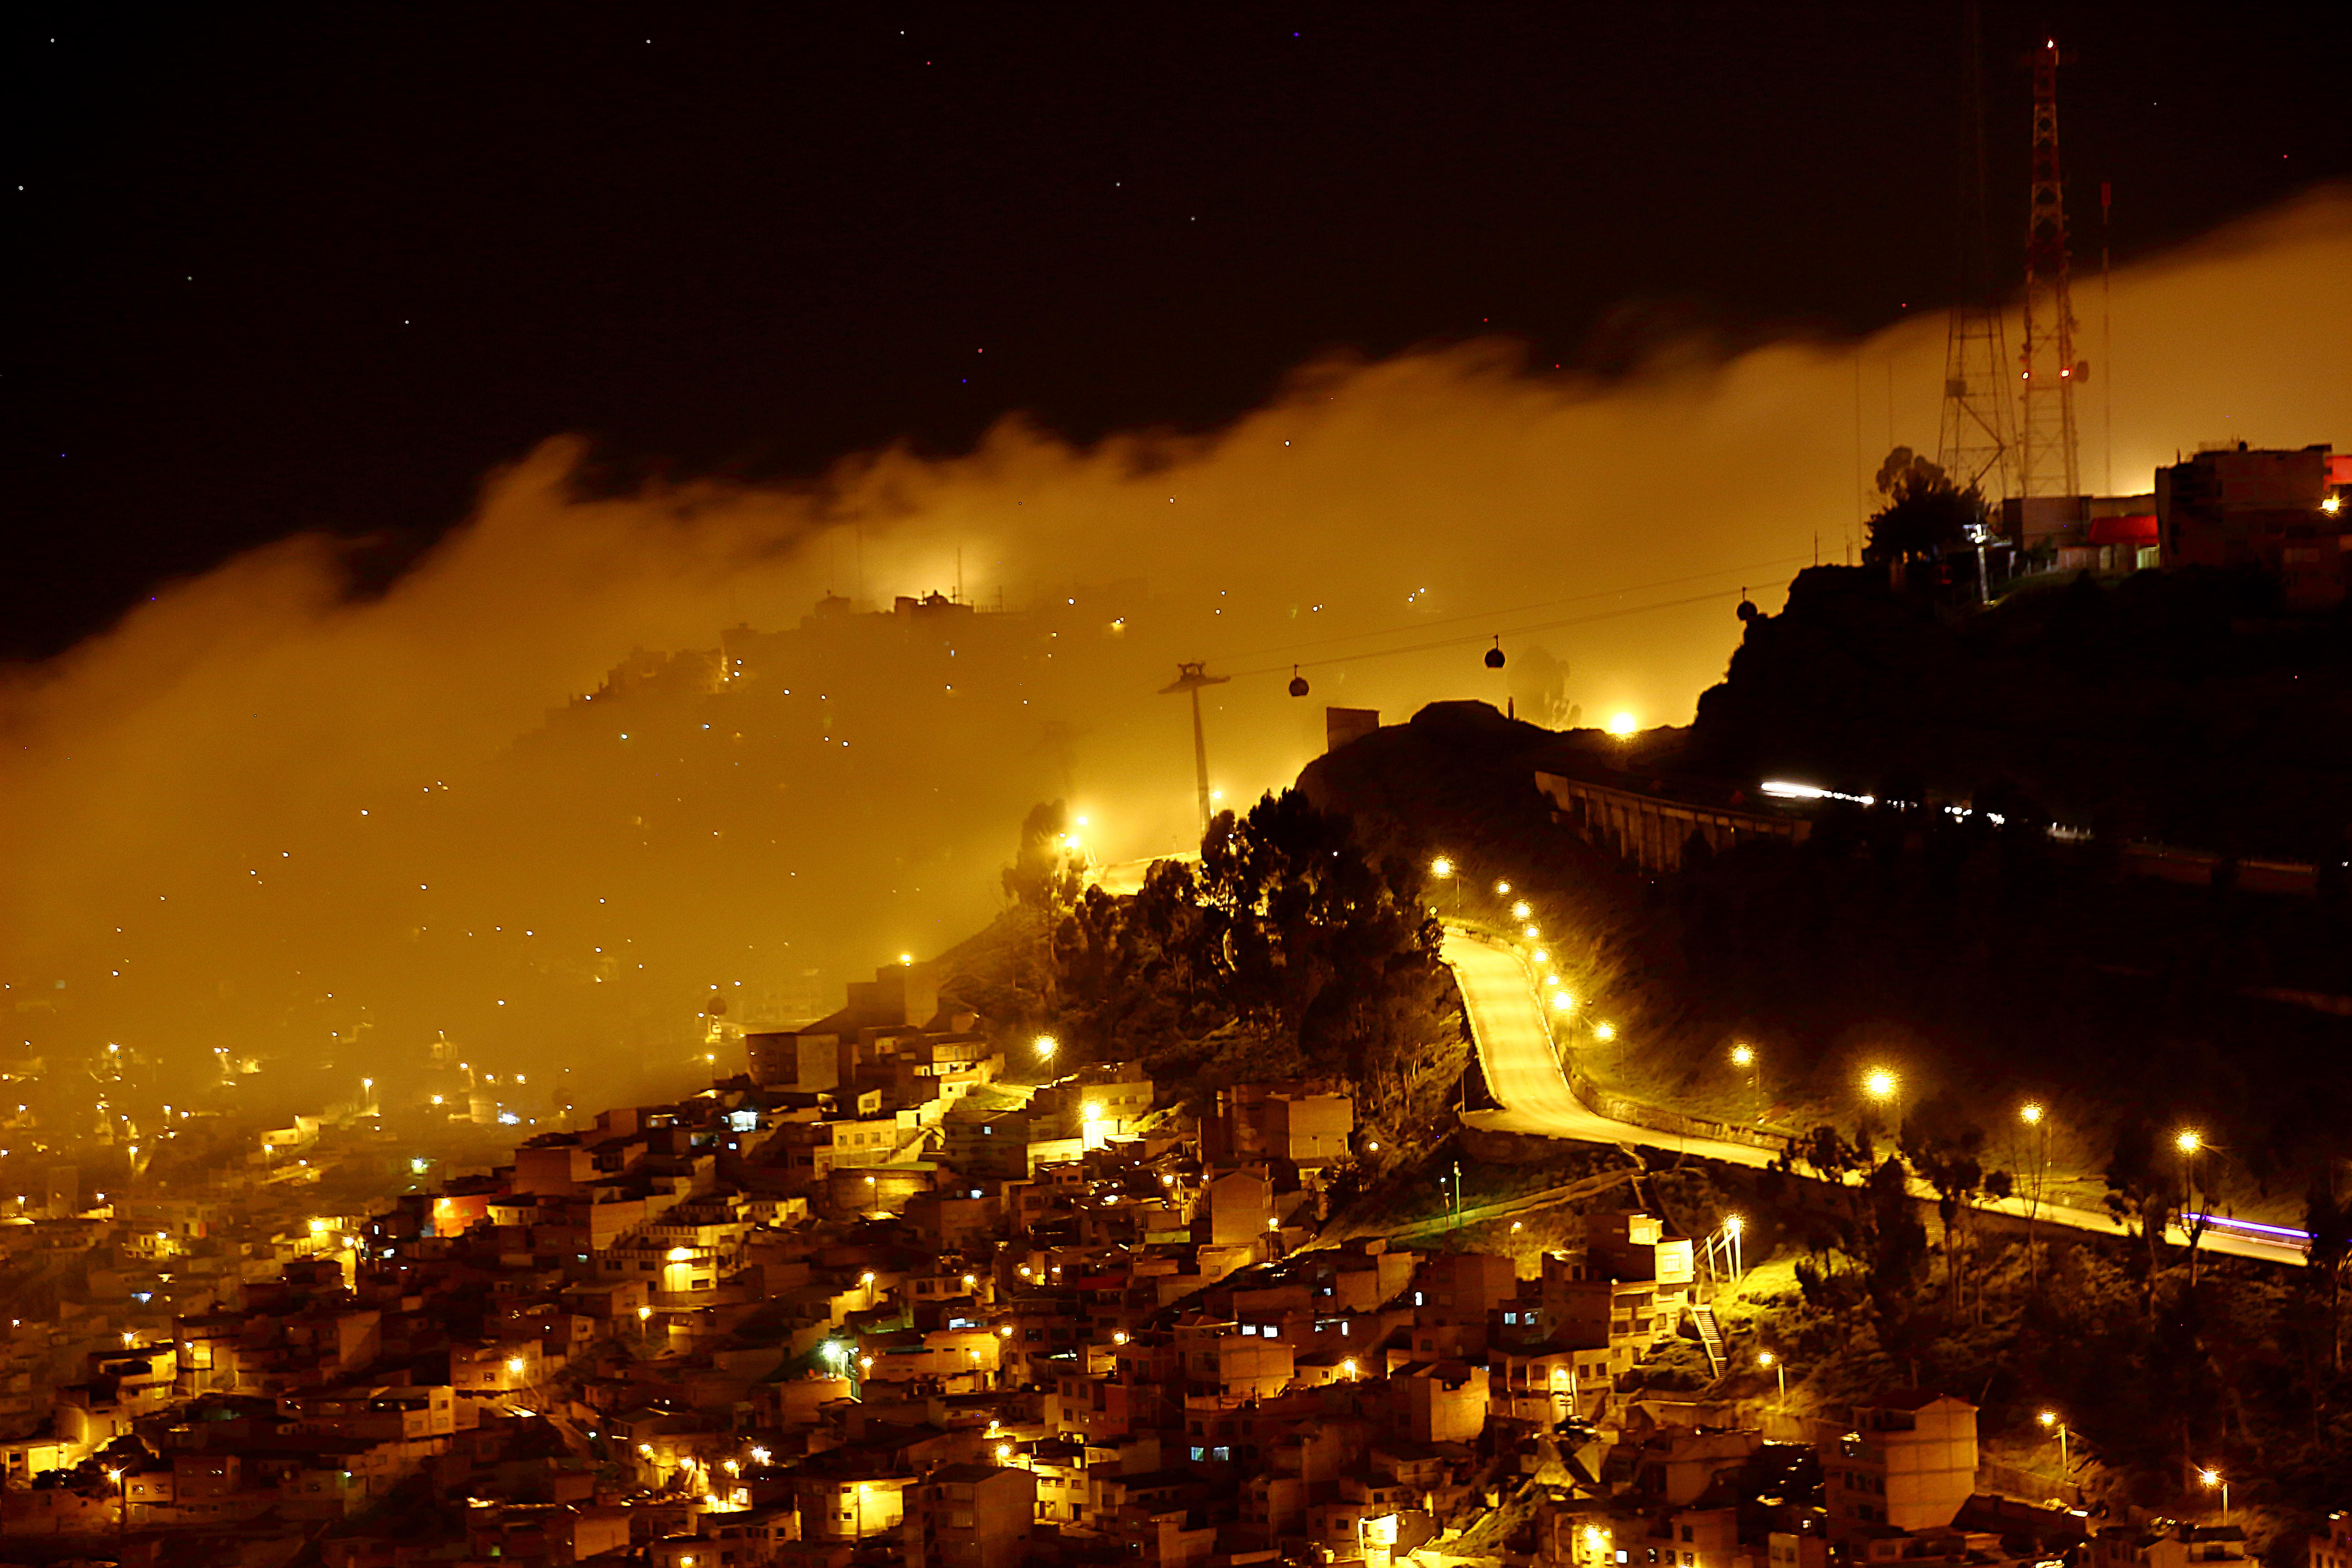 Foggy Night in La Paz